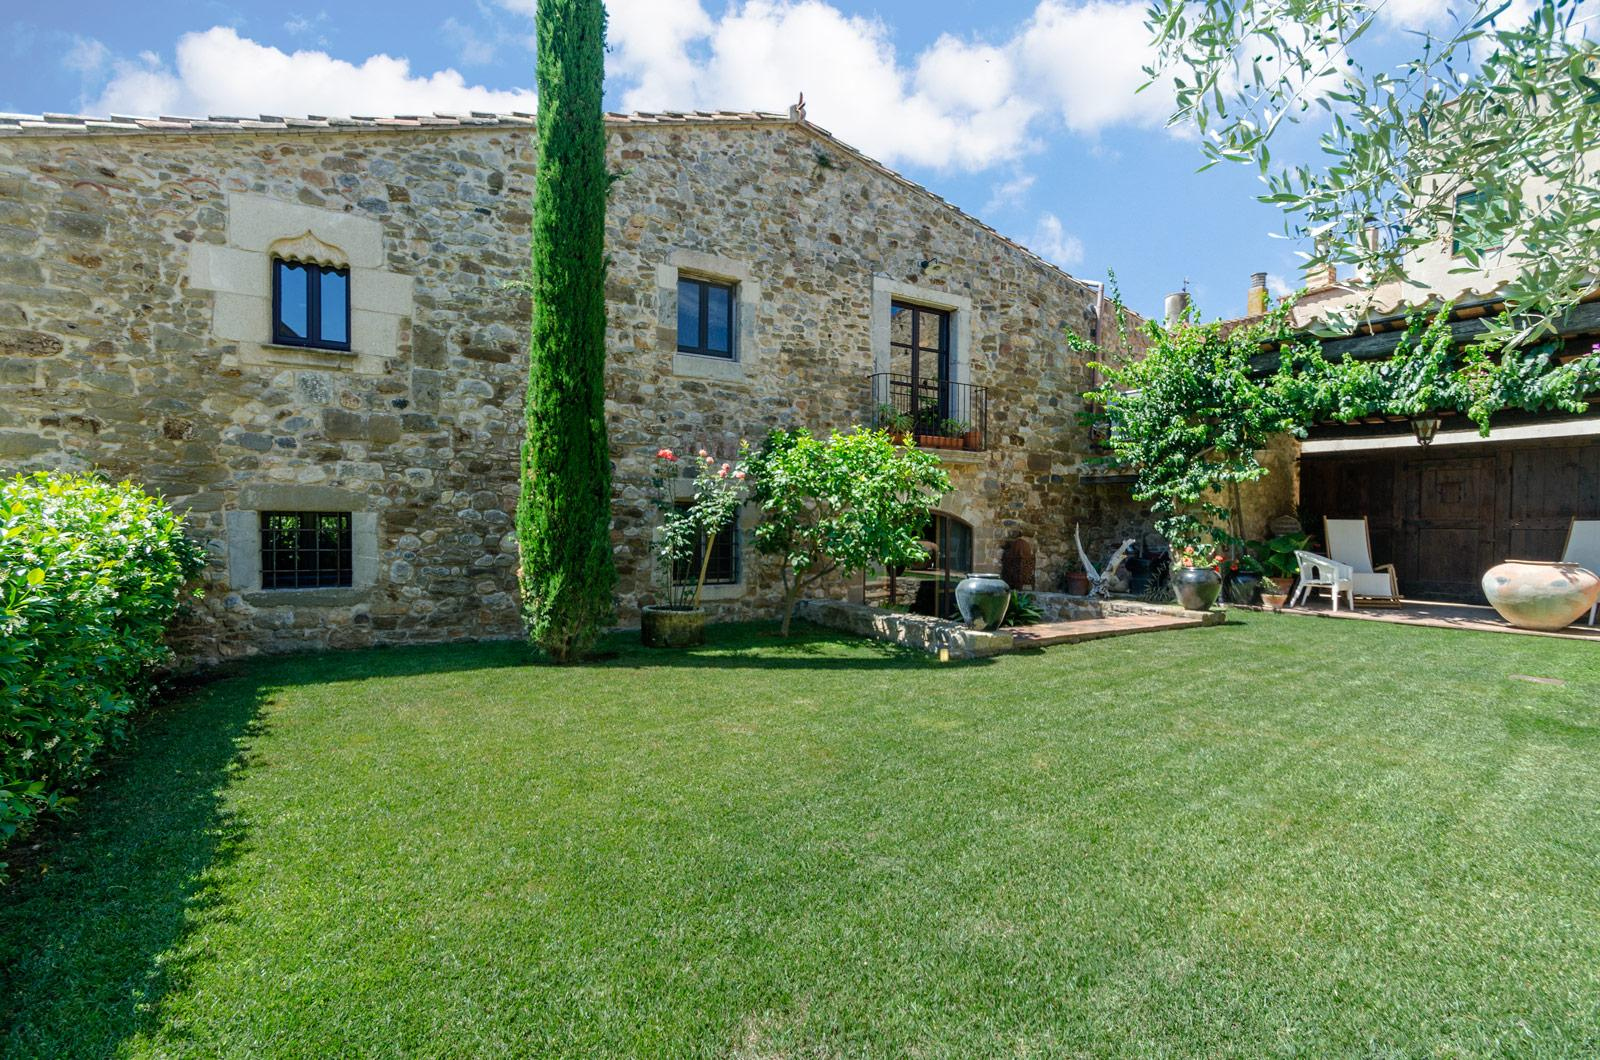 2. Villa for sale in Girona - Traditional Masia, Catalonia country house, for sale in Girona